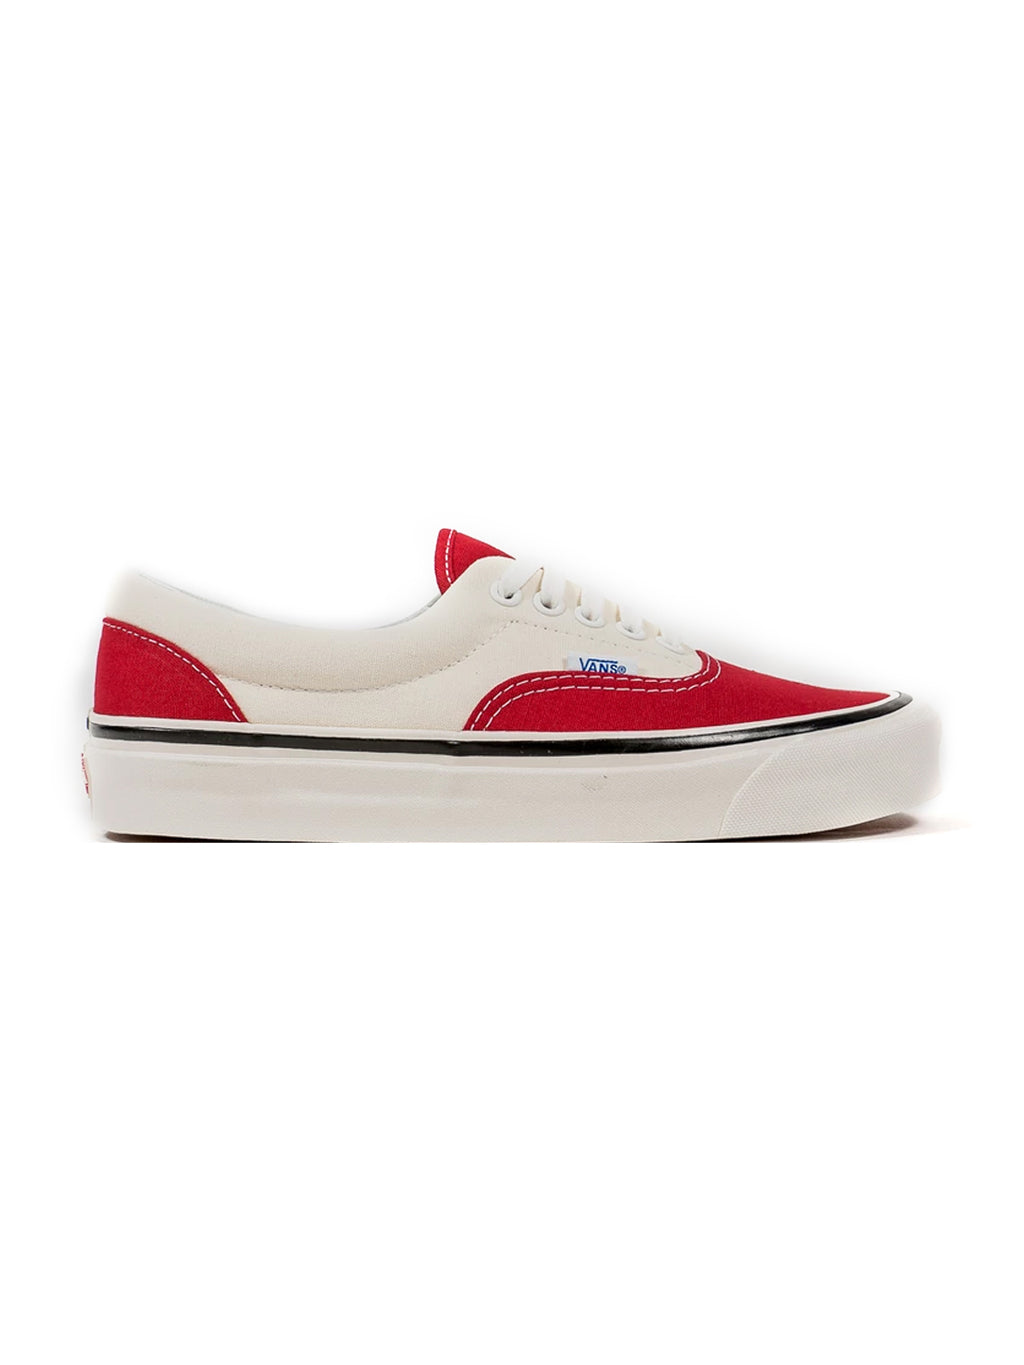 Red Era 95 DX Anaheim Factory Sneakers